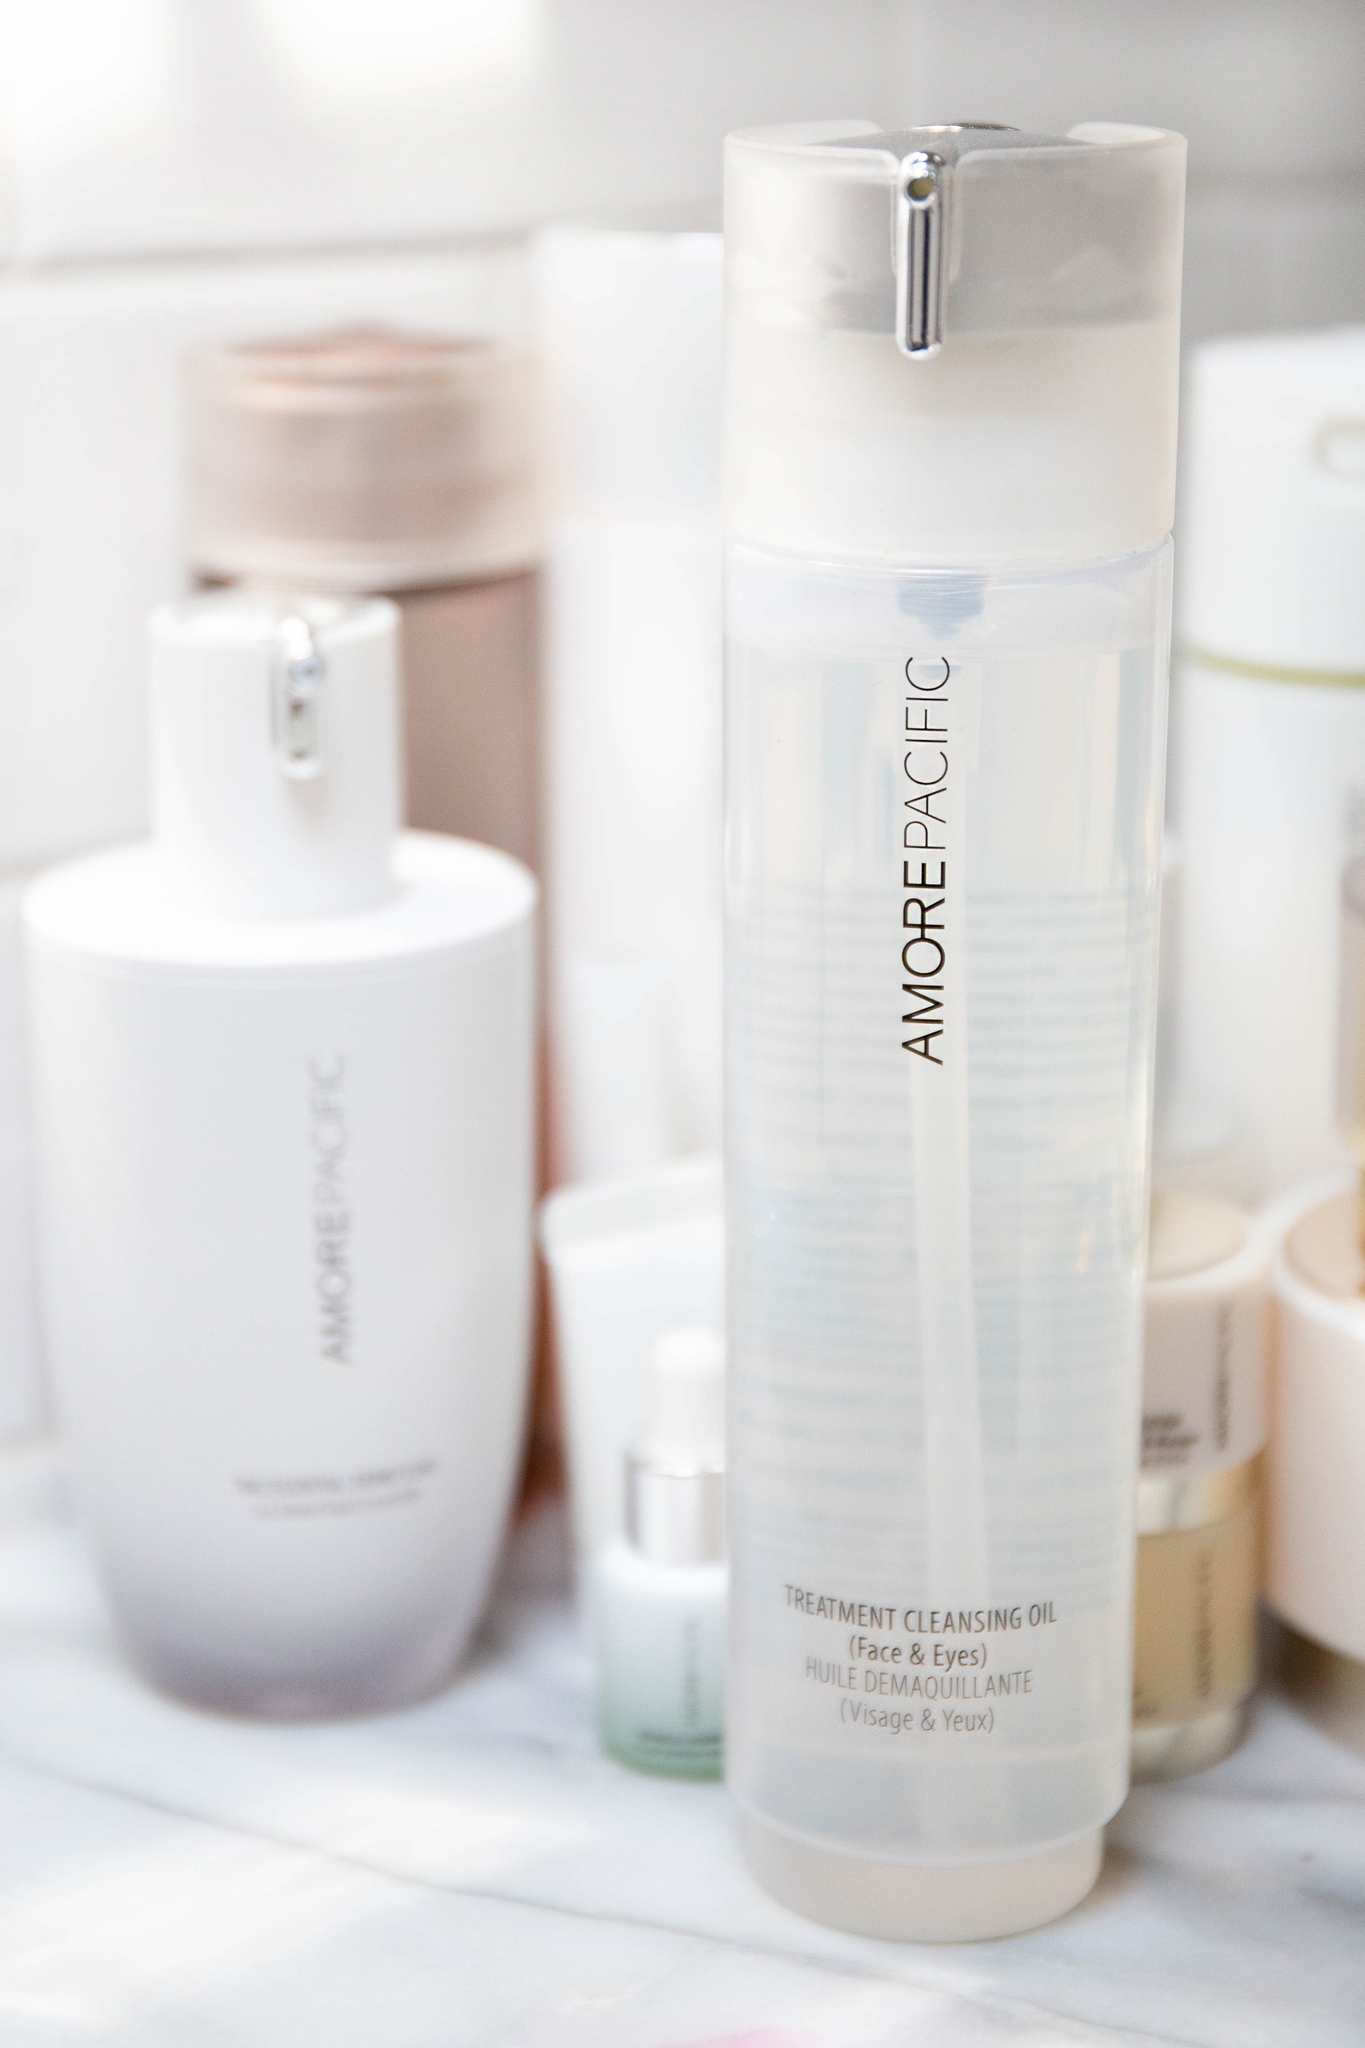 AmorePacific Cleansing Oil